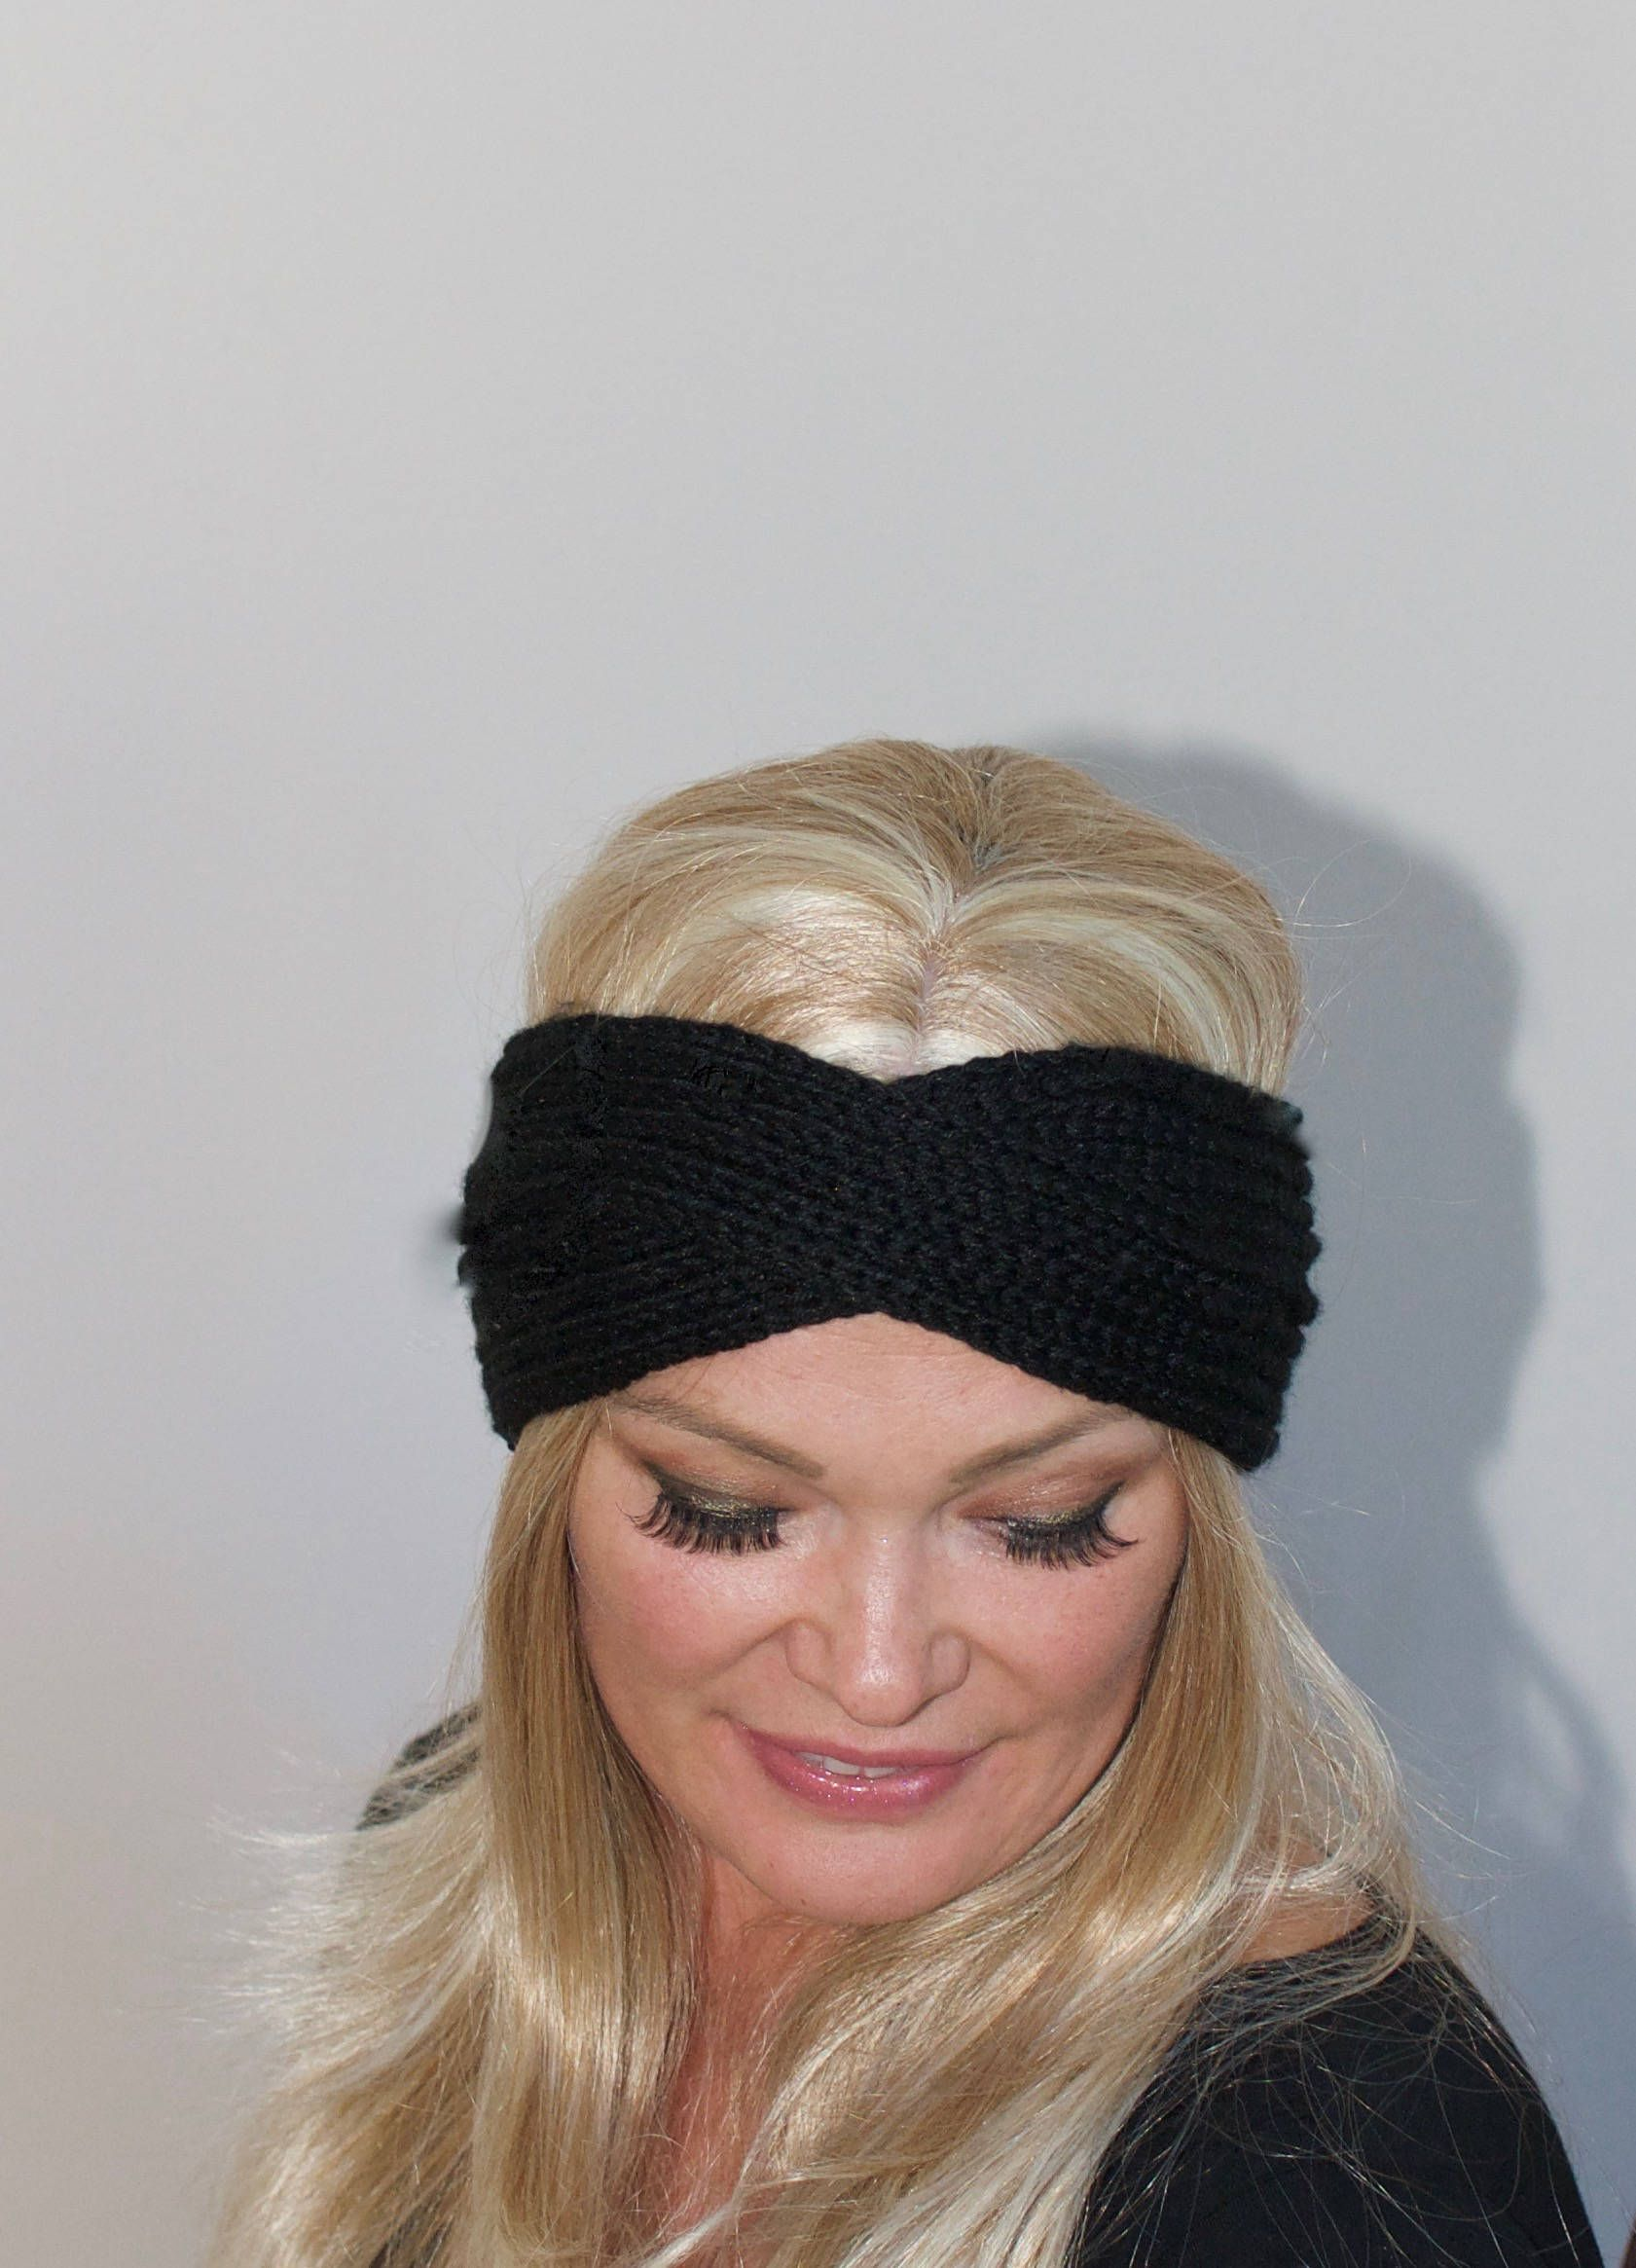 9cd0868f741 Turban Headband Crochet Head wrap Black Headband Black Women ear warmer  Black knit headband Christmas Gift under 25 by lucymir on Etsy